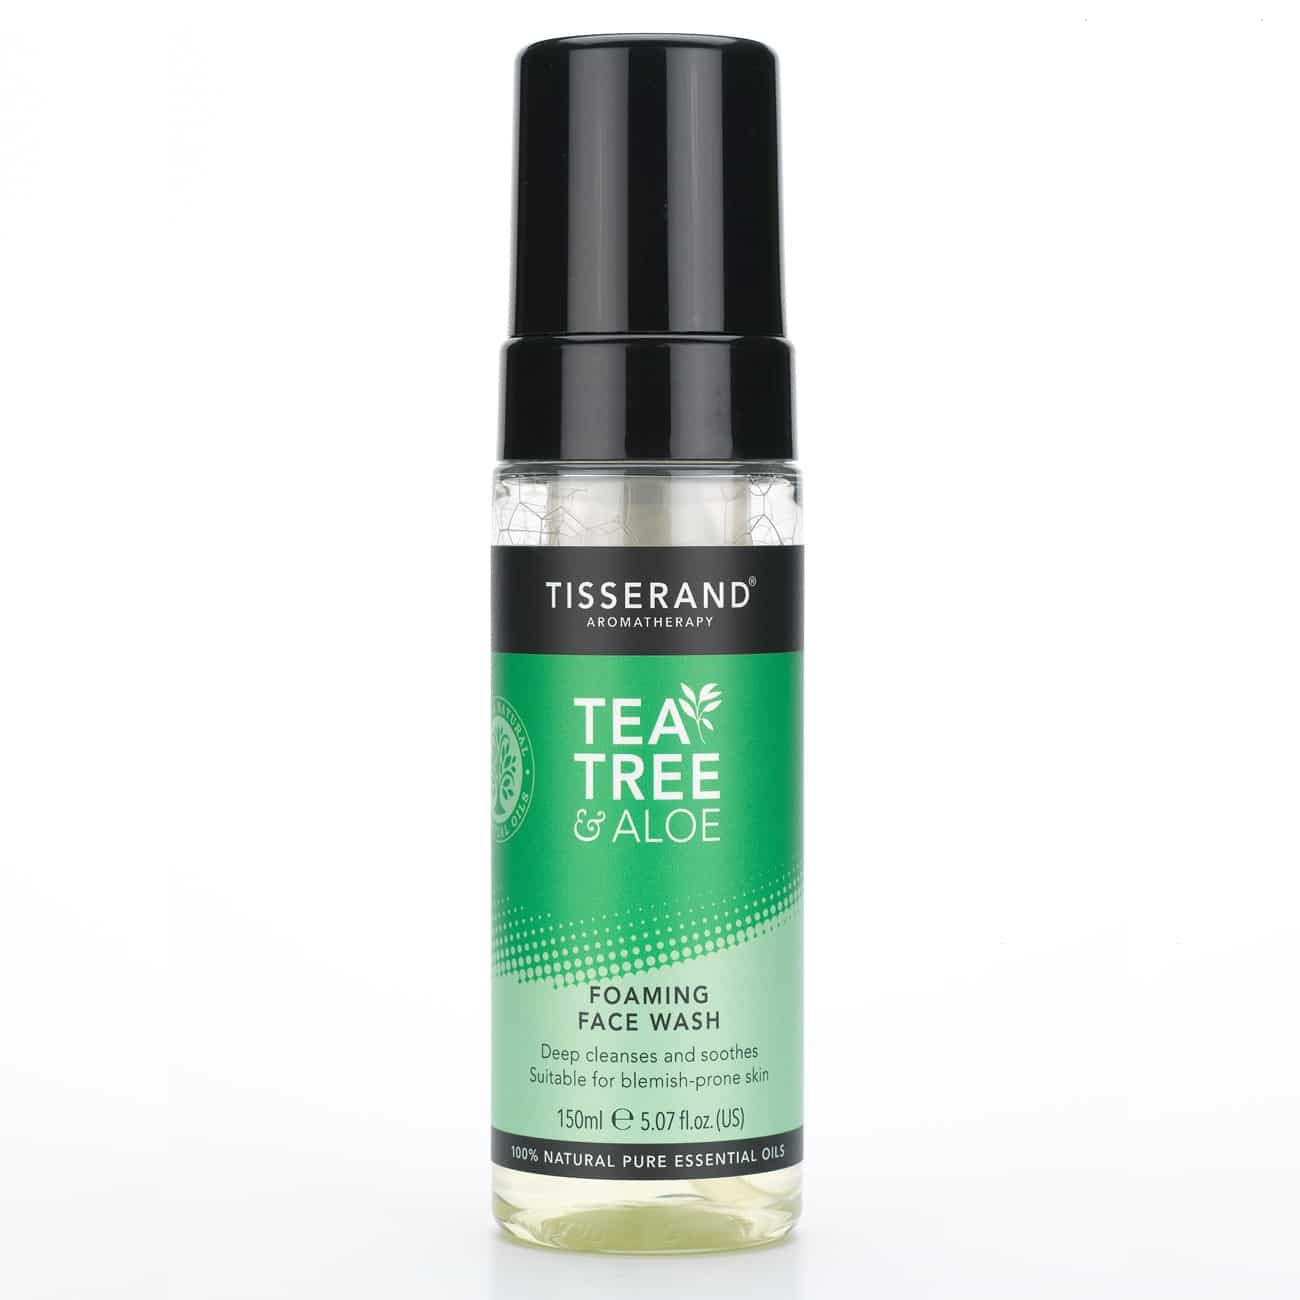 Tisserand Aromatherapy Foaming Face Wash